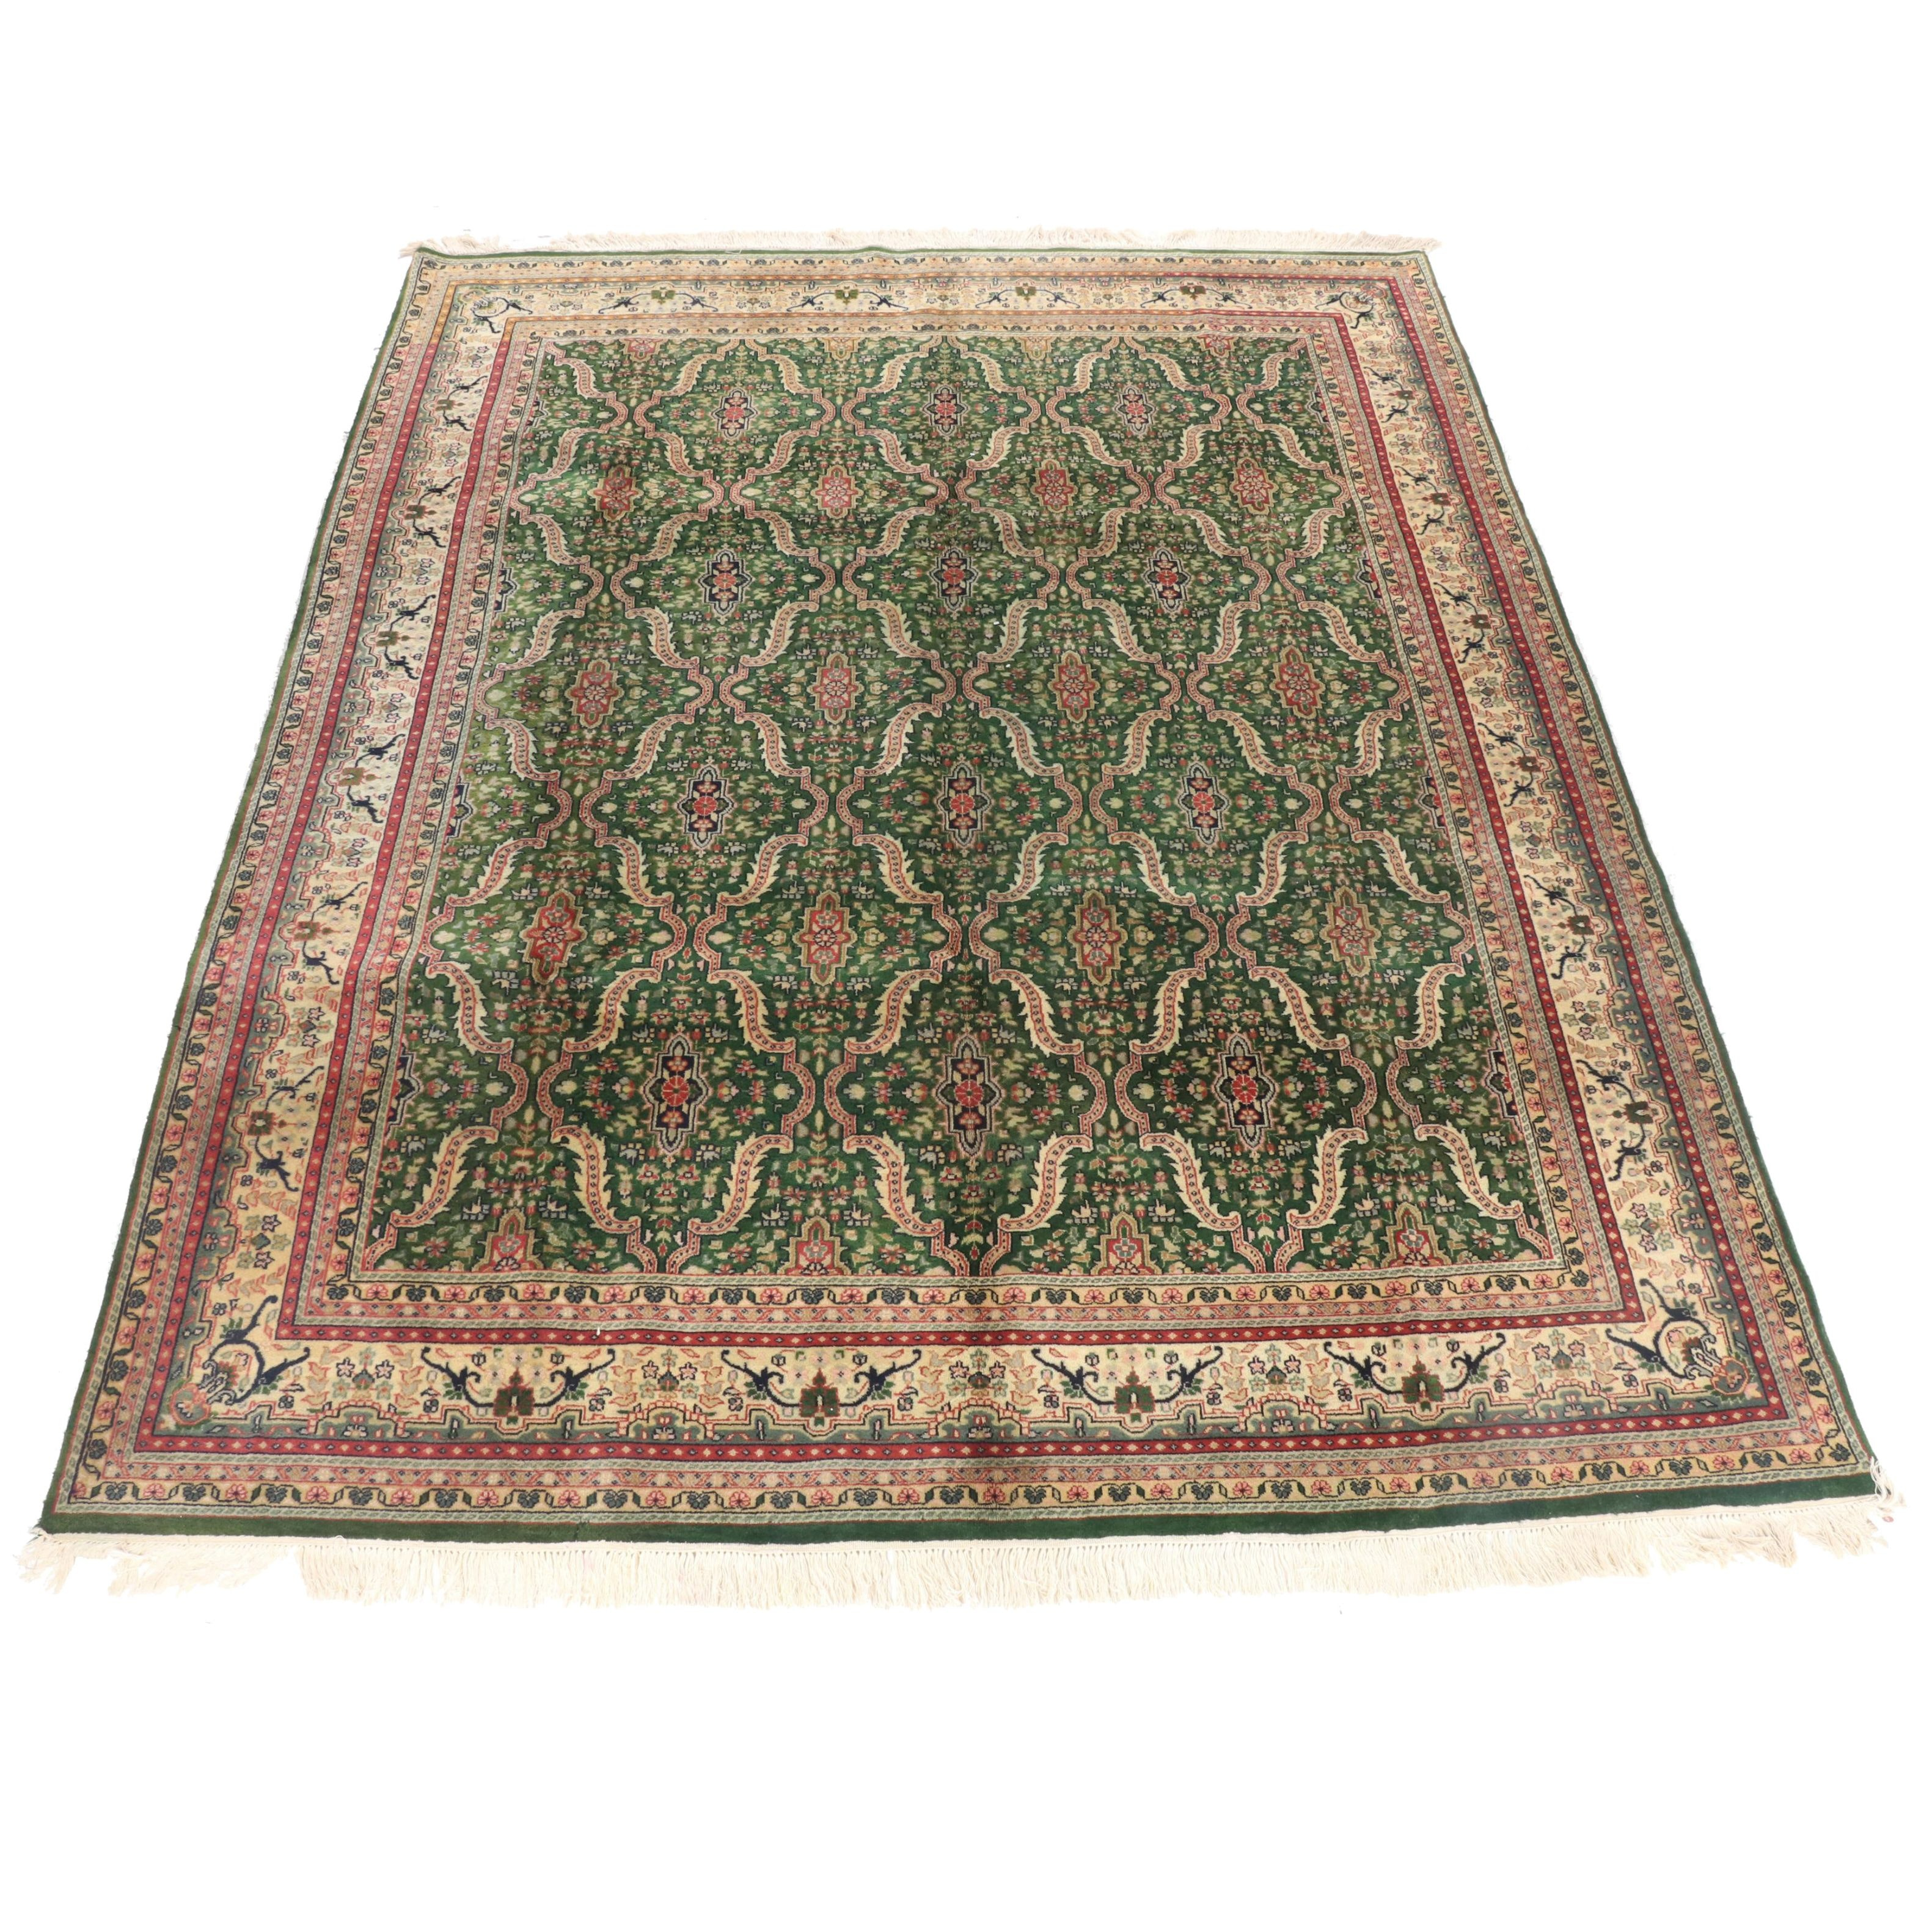 Hand-Knotted Indian Kashan Wool Area Rug